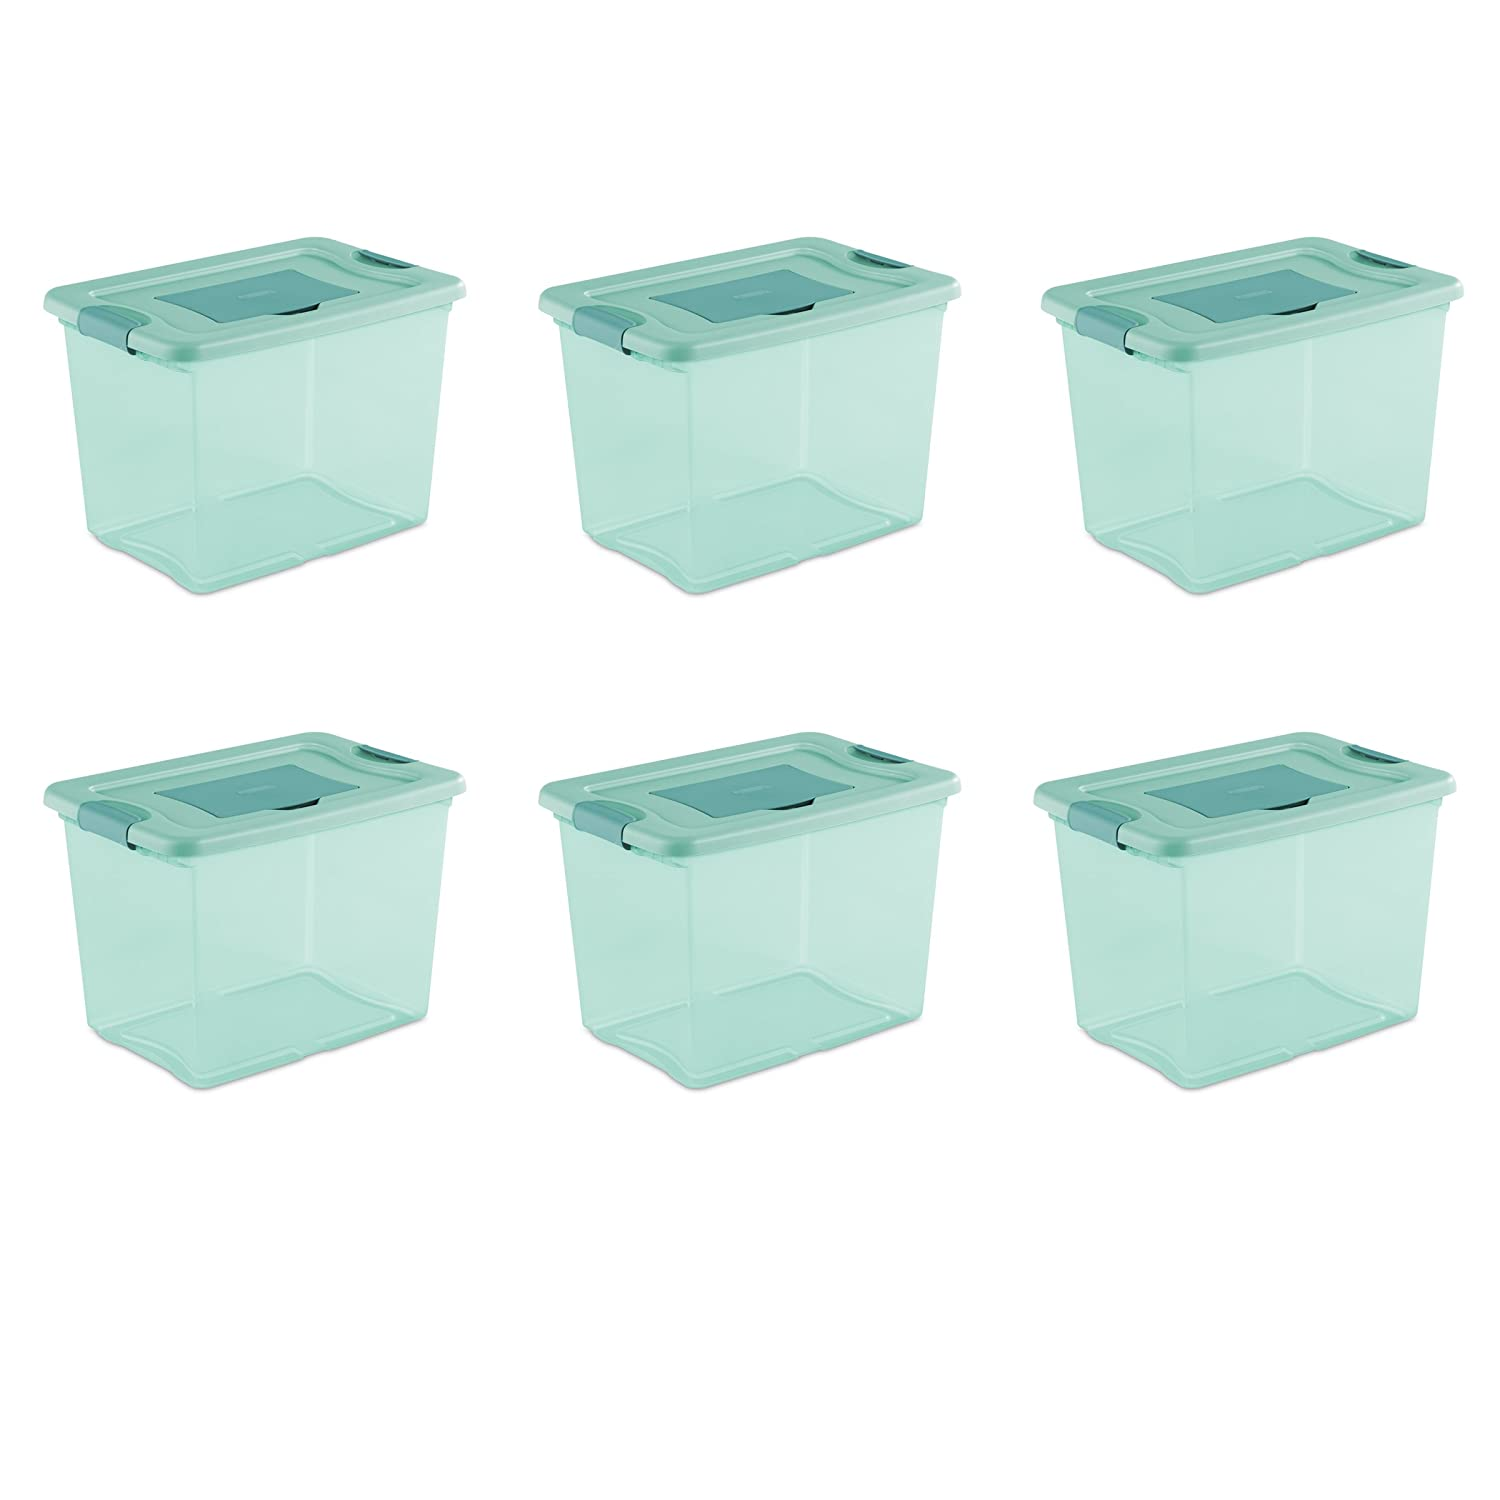 Sterilite 15057Y06 25 Qt, 24L Fresh Scent Box, Aqua Tent base with Aqua Chrome Lid & Teal Splash Latches, 6-Pack